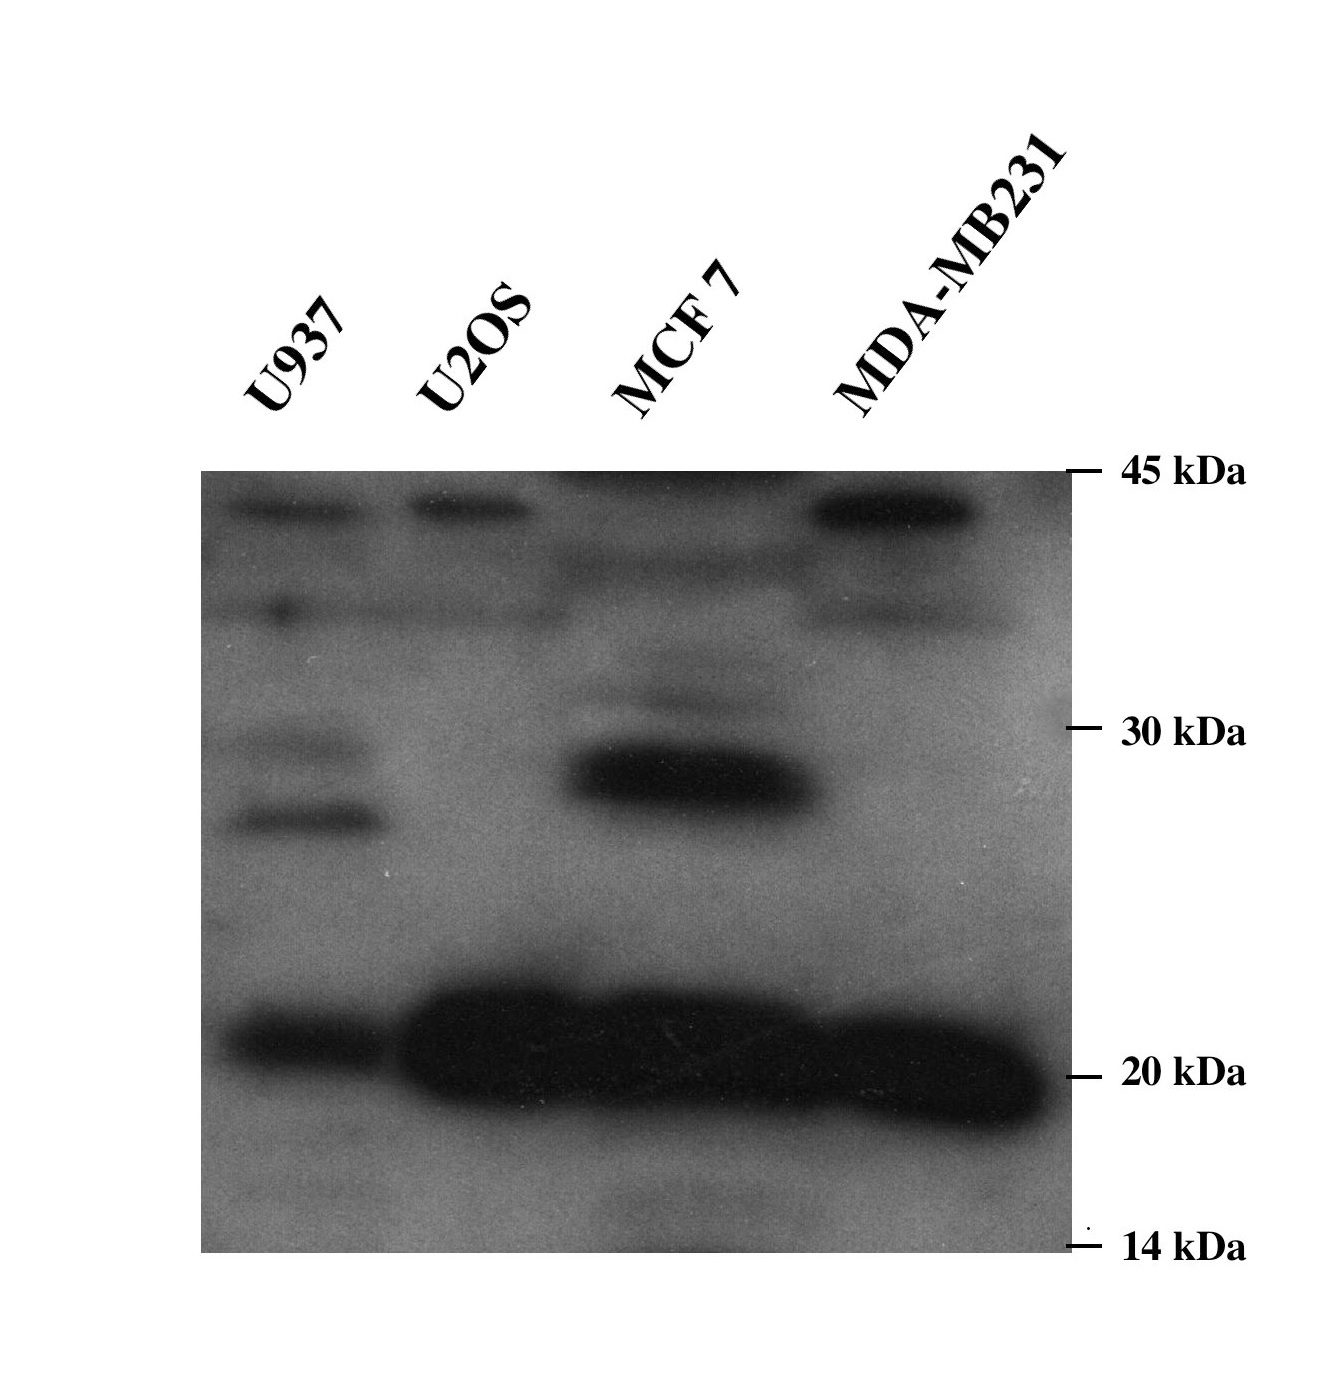 30 micrograms of detergent extracts of the indicated cell lines were loaded on a 12.5 SDS PAGE and ECL stained using SG36 as primary antibody against Praf2 diluted 1:5000.